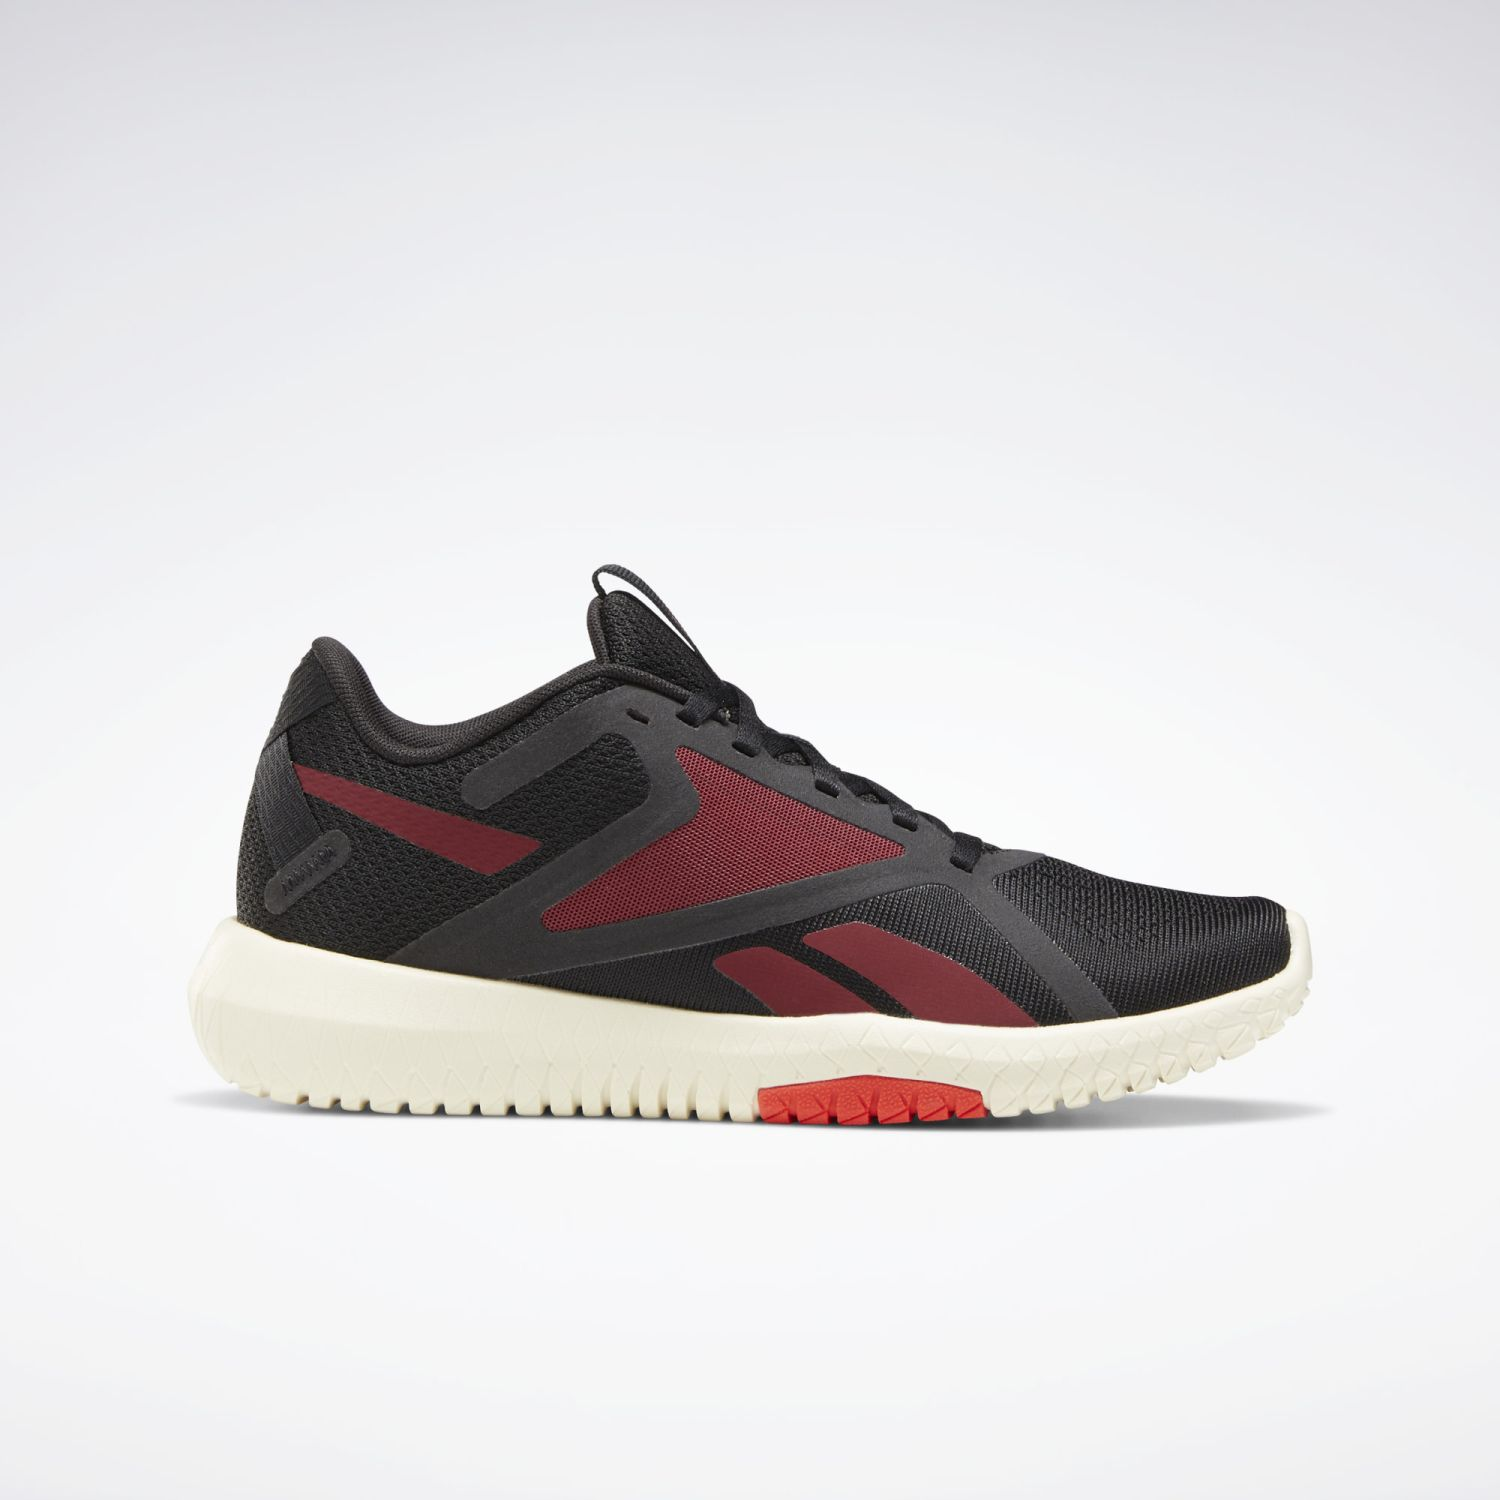 Reebok REEBOK FLEXAGON FORCE 2.0 Negro / rojo Mujeres